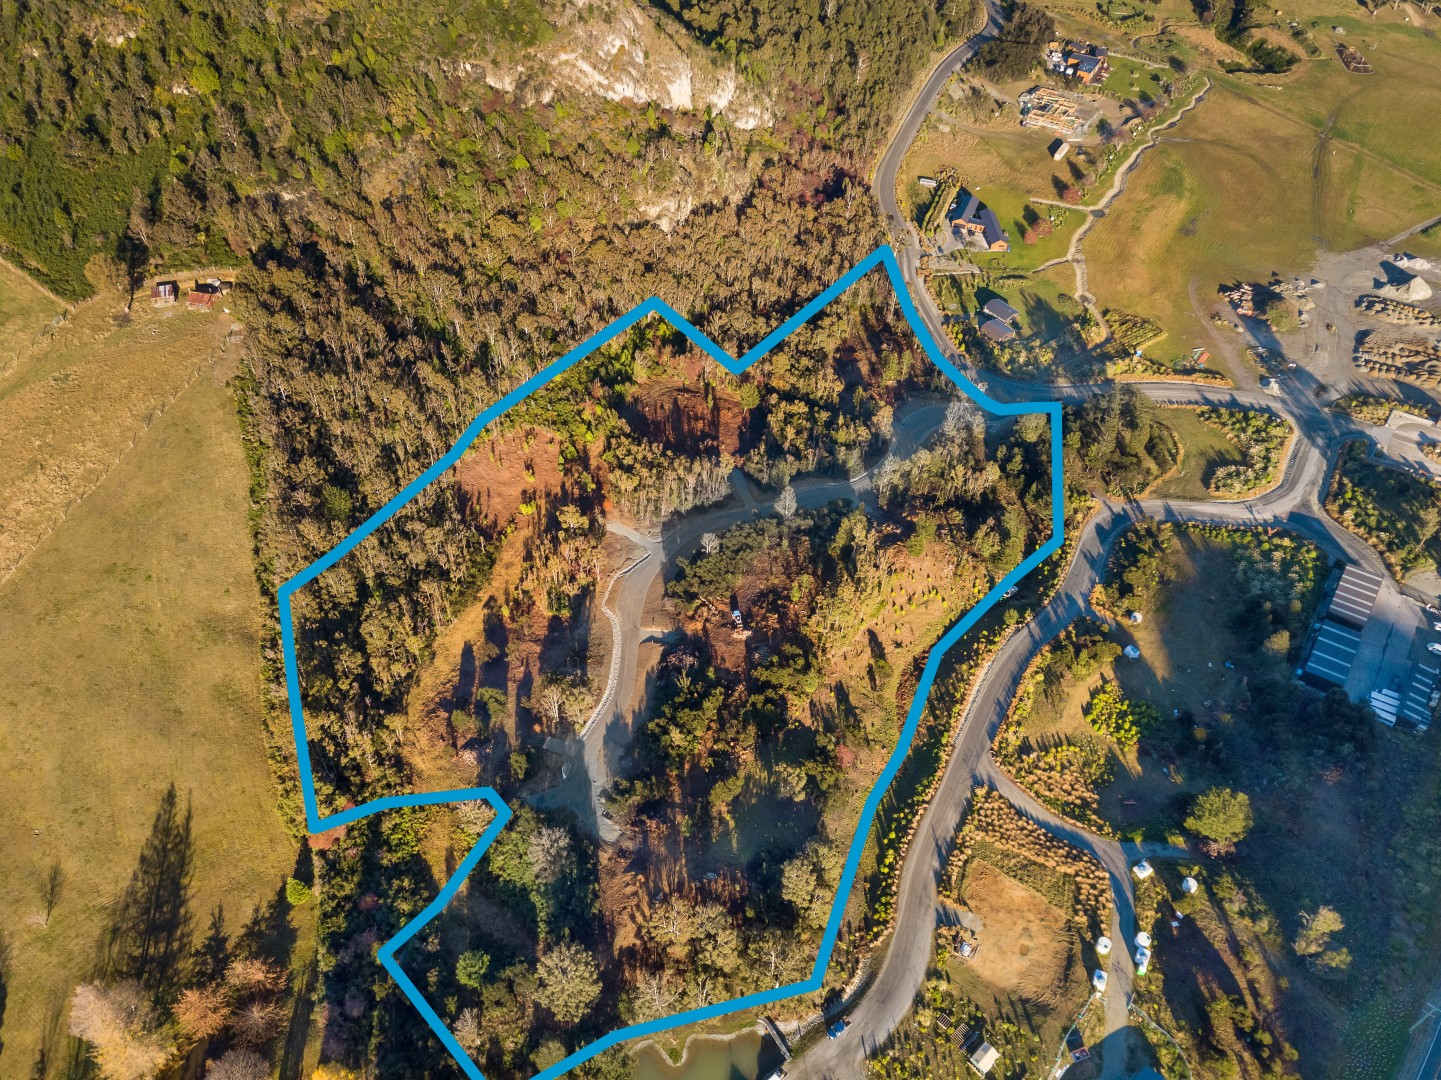 FEATURES-Haast Eagle stage of GlenTui Heights now available-Sections range from 2,990 - 3,940sqm-Outstanding quality water, UV filtered and chemical free-Title anticipated Spring 2019-Lakeside semi-rural location and close to nature trails-All services to section boundariesPrices from $825,000 Land Area: 2,990.00 m2. -